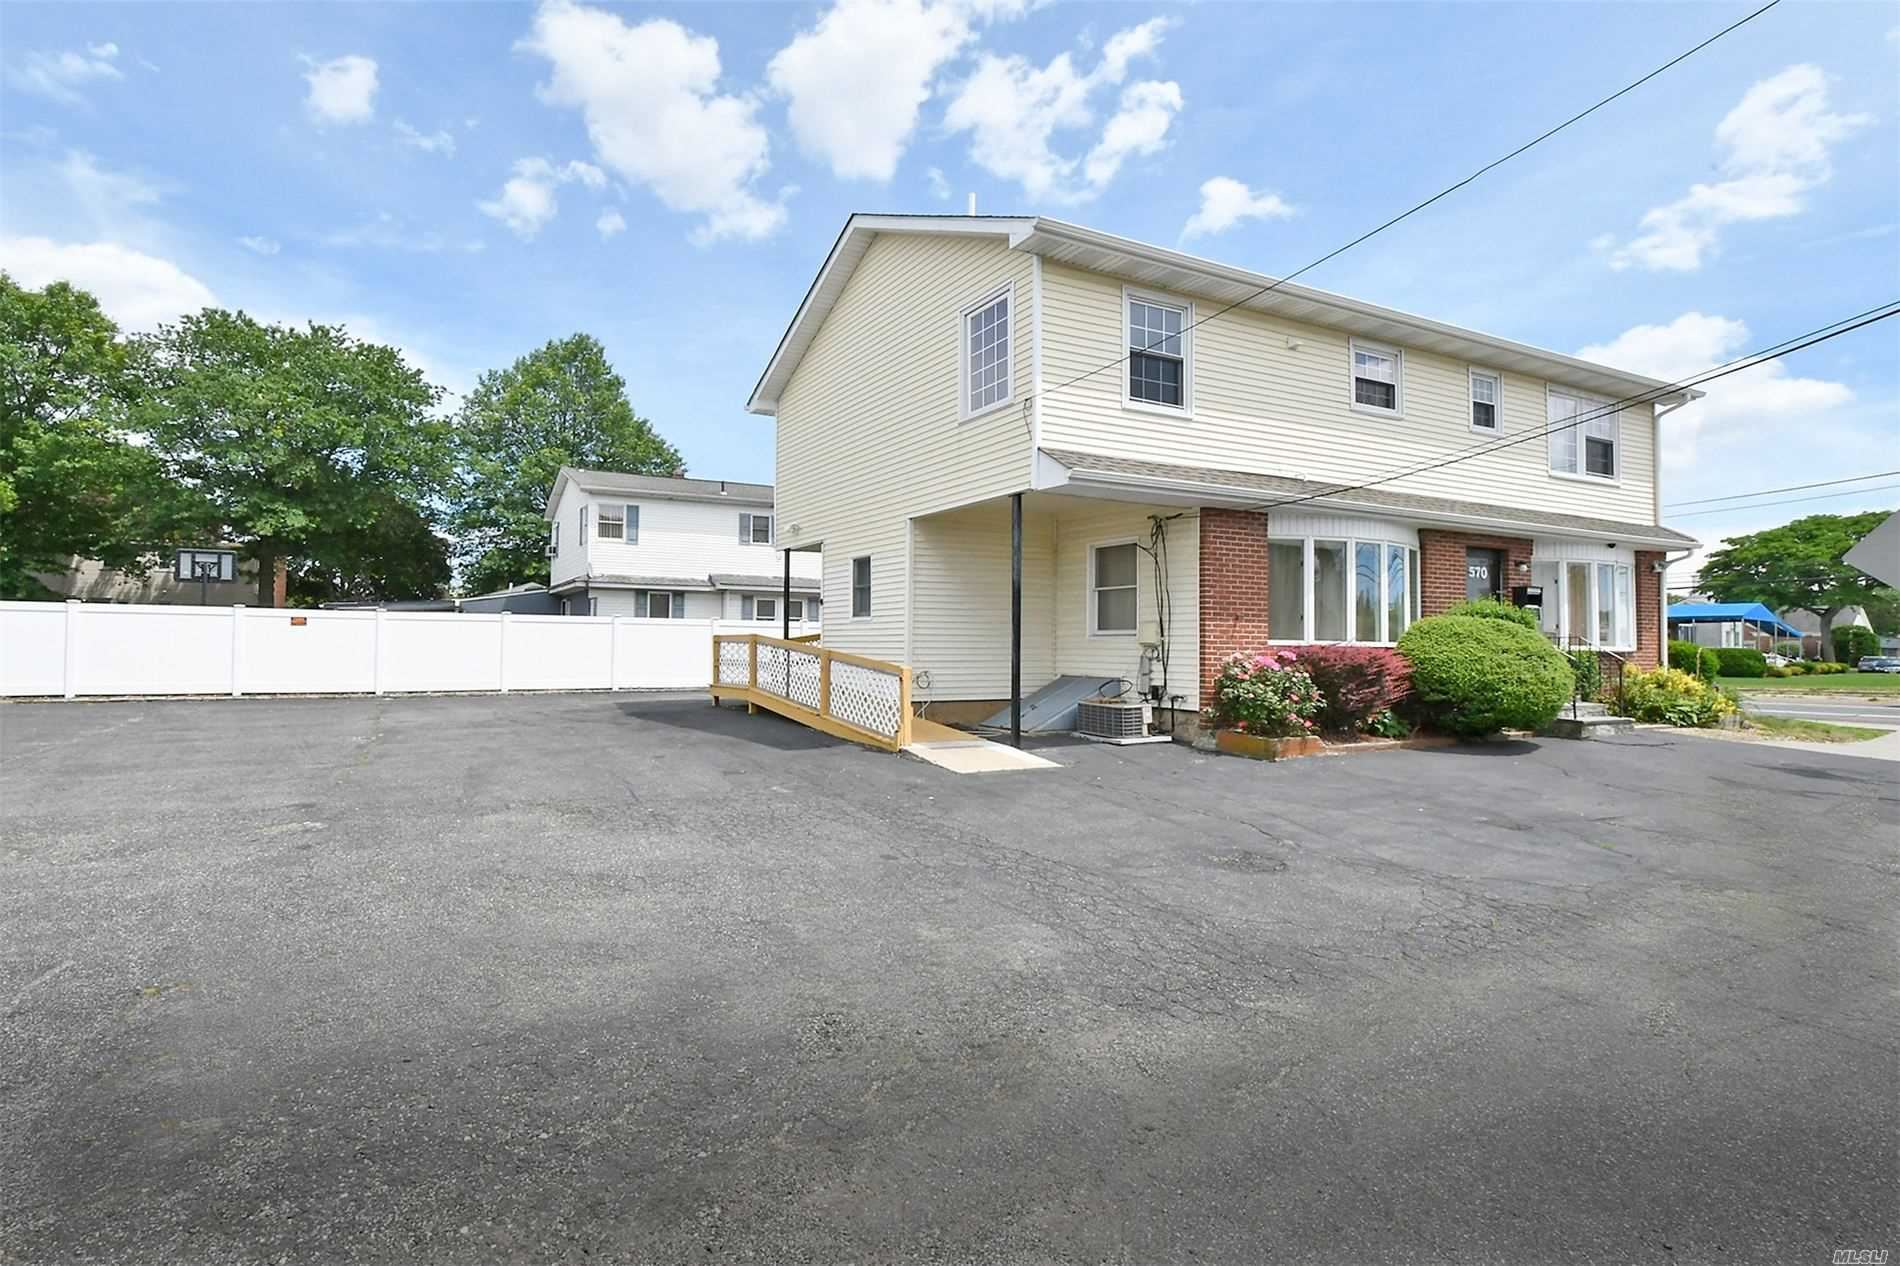 570 Central Ave, Bethpage, NY 11714 - MLS#: 3225483